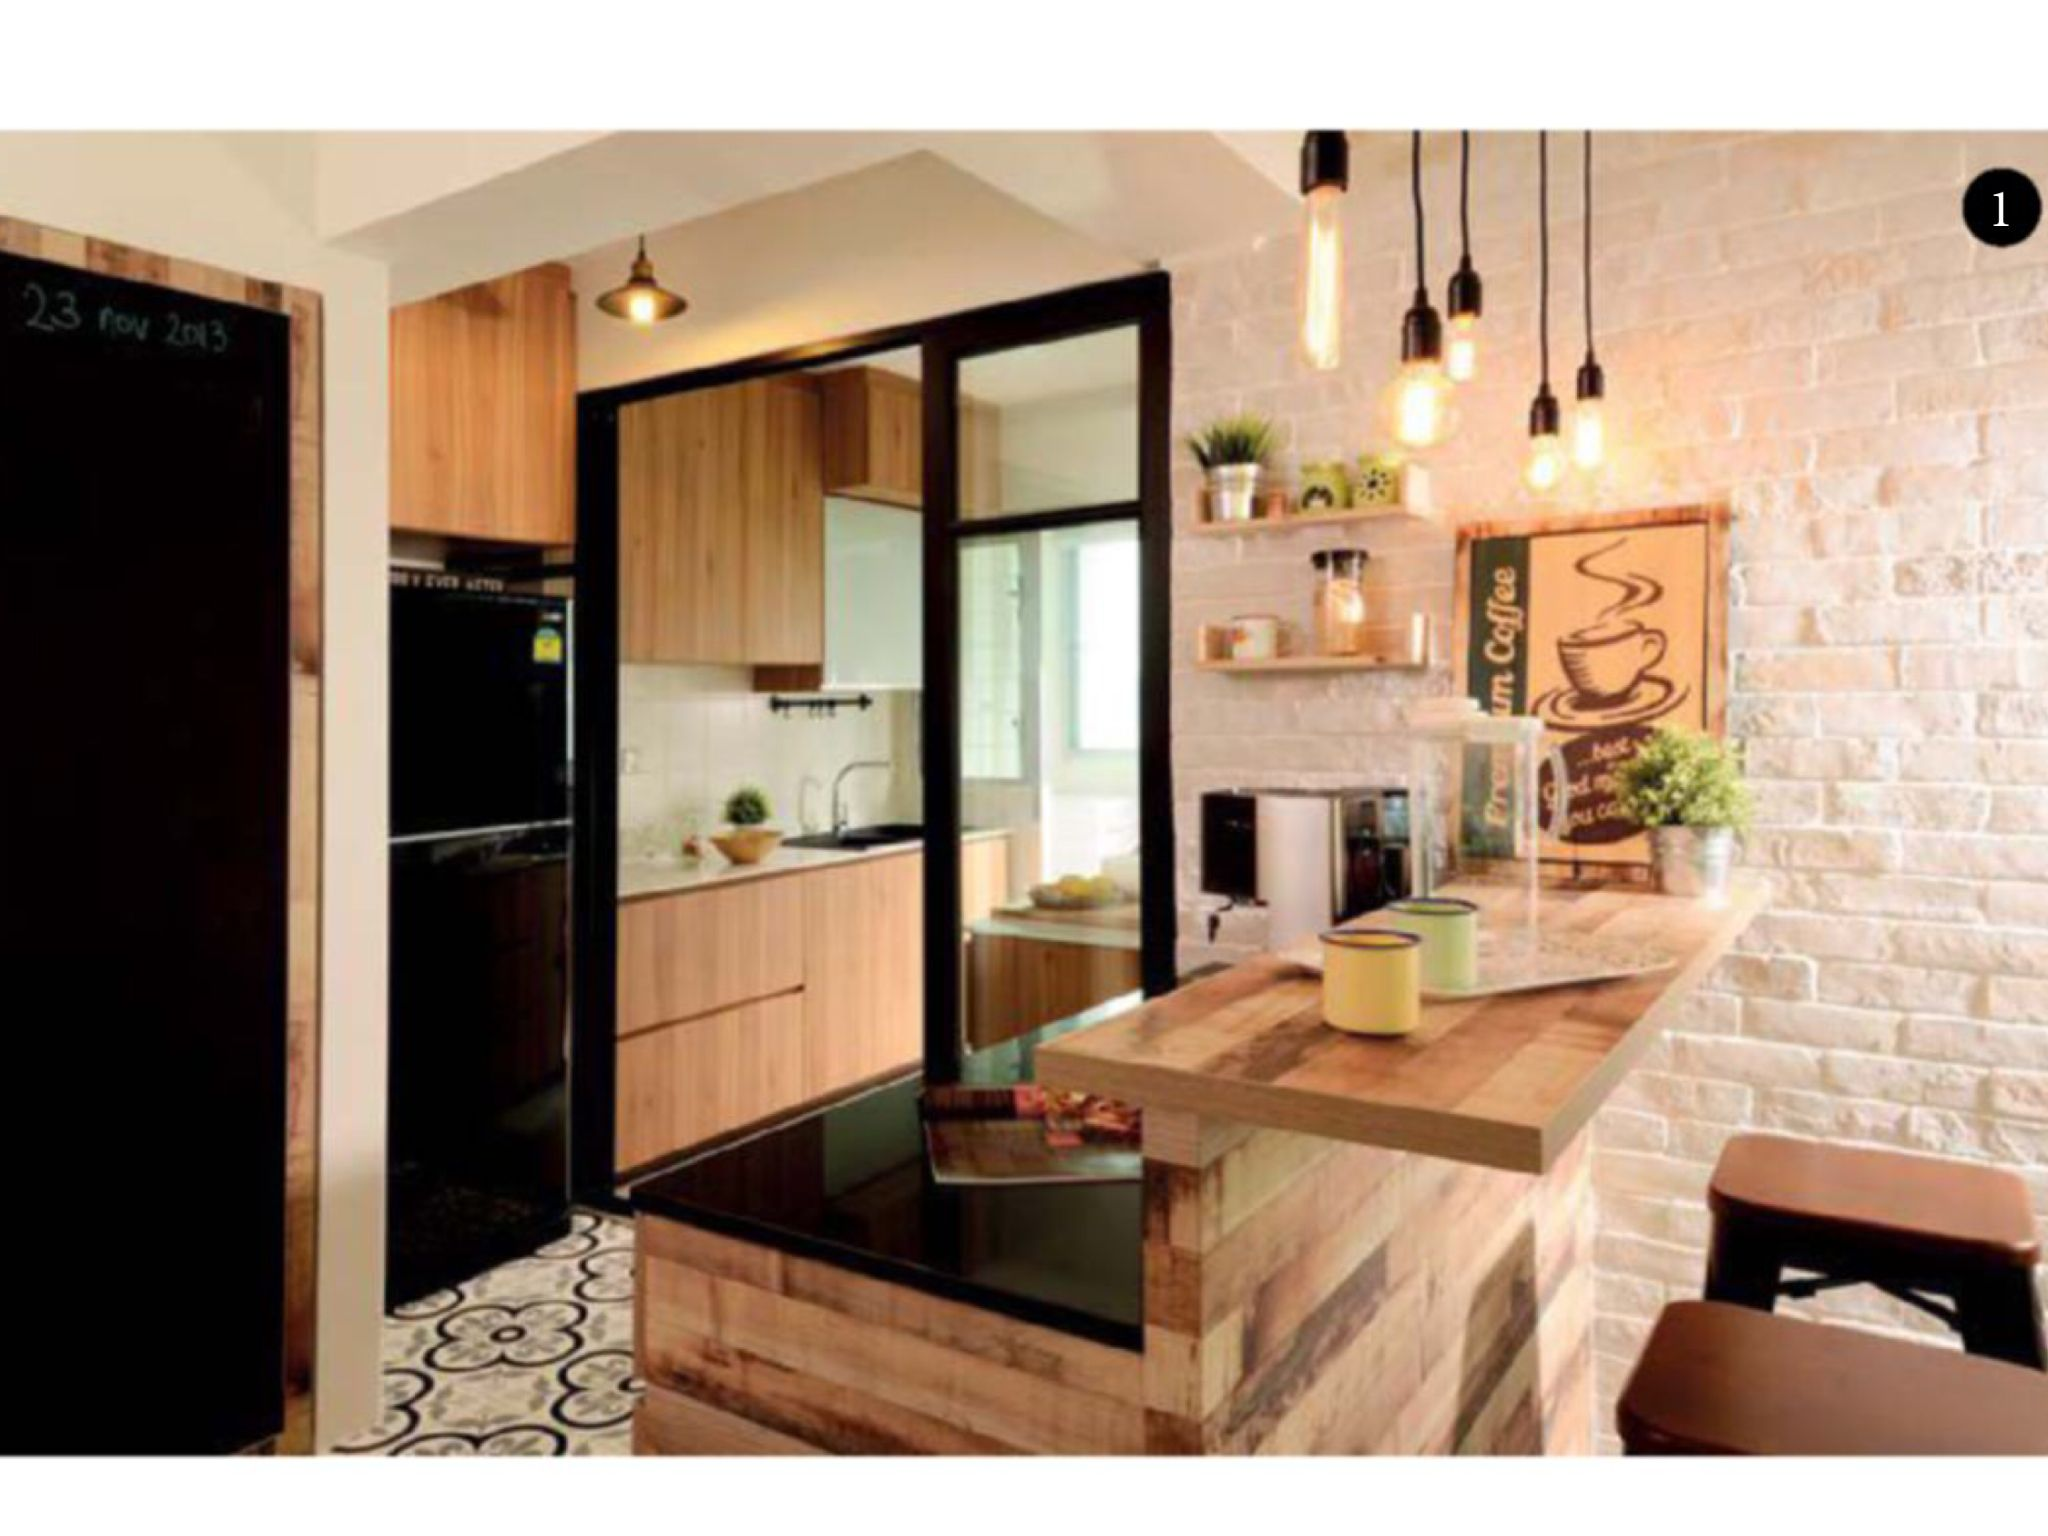 Nice separation of wet and dry hdb ideas pinterest shelter dining and scale for Hdb wet and dry kitchen design